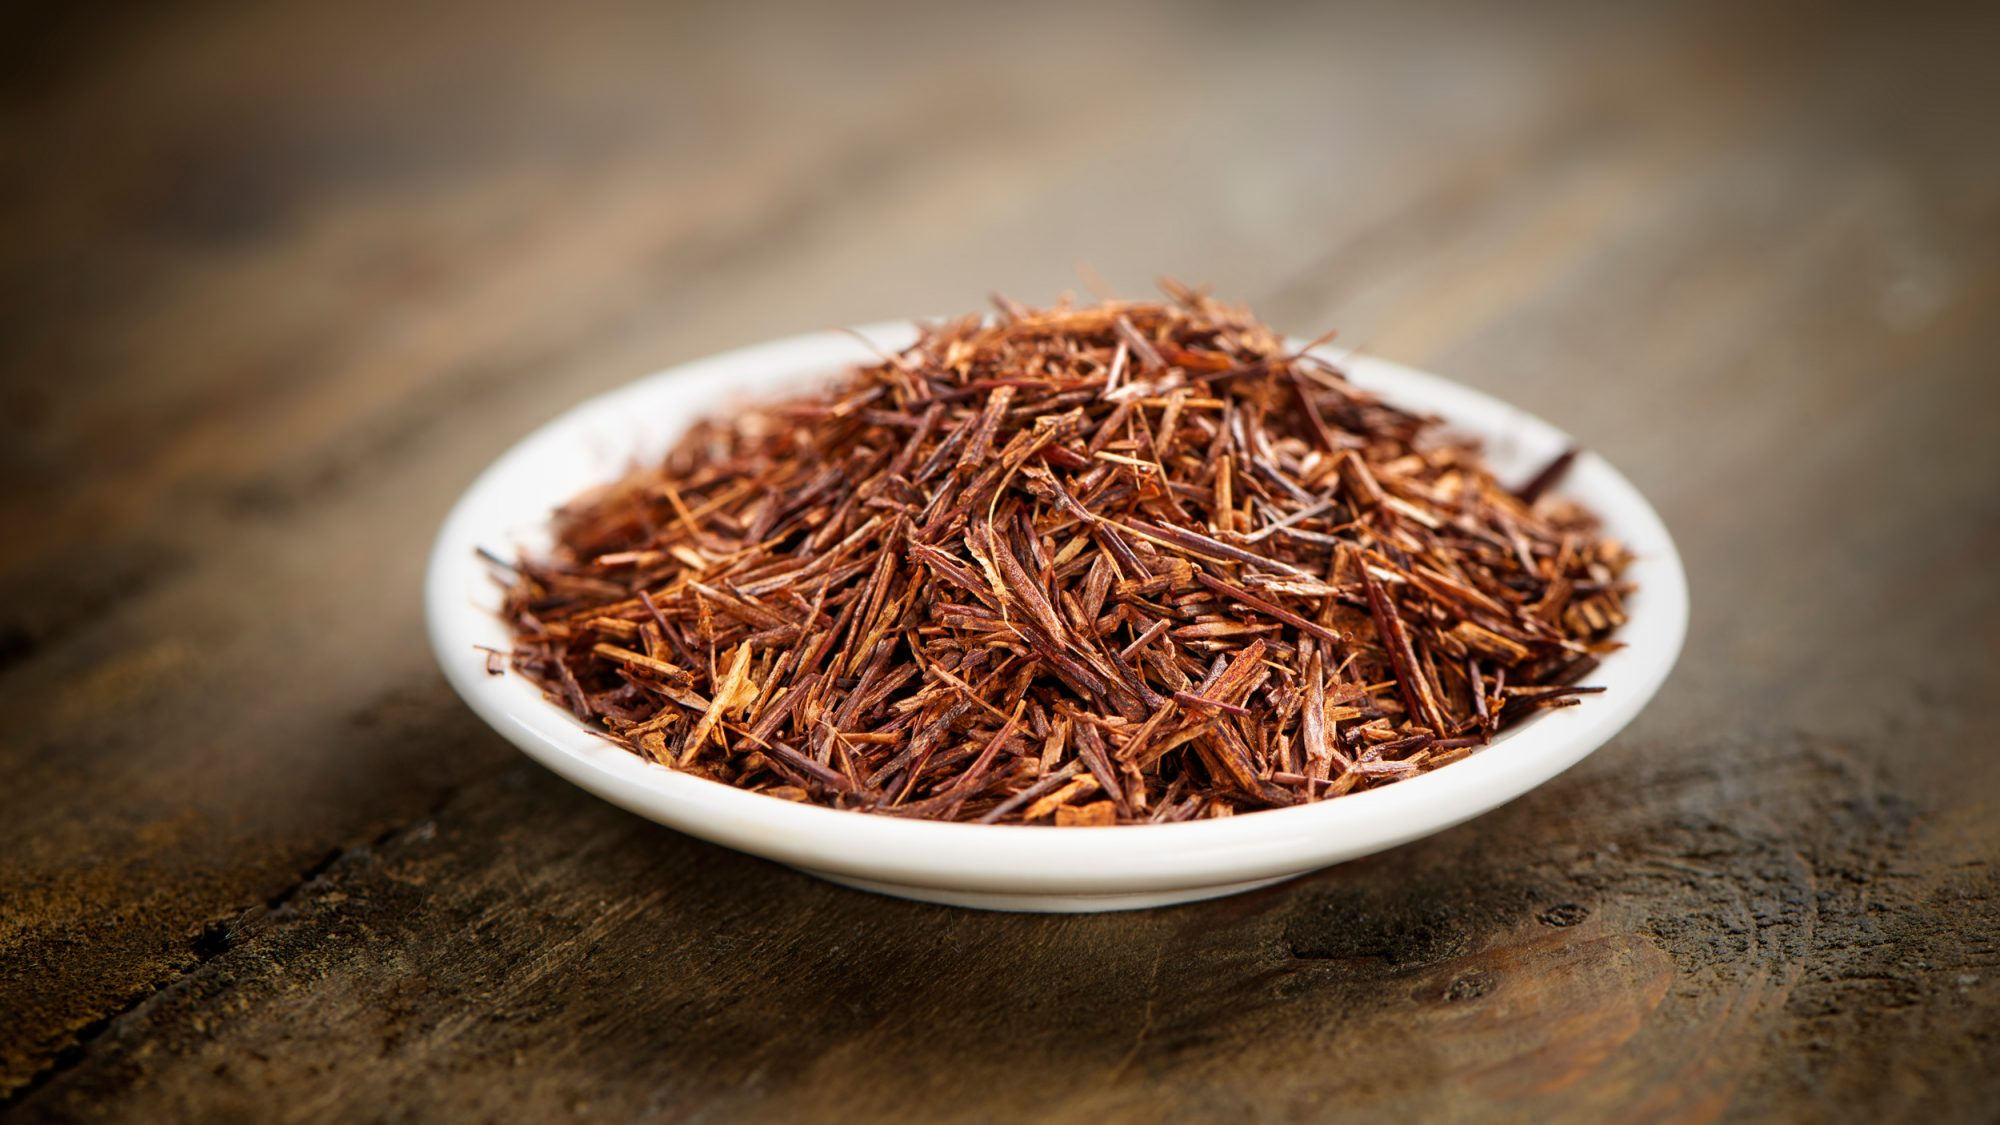 Rooibos is the Sweet, Crowd-Pleasing Tea You've Been Looking For